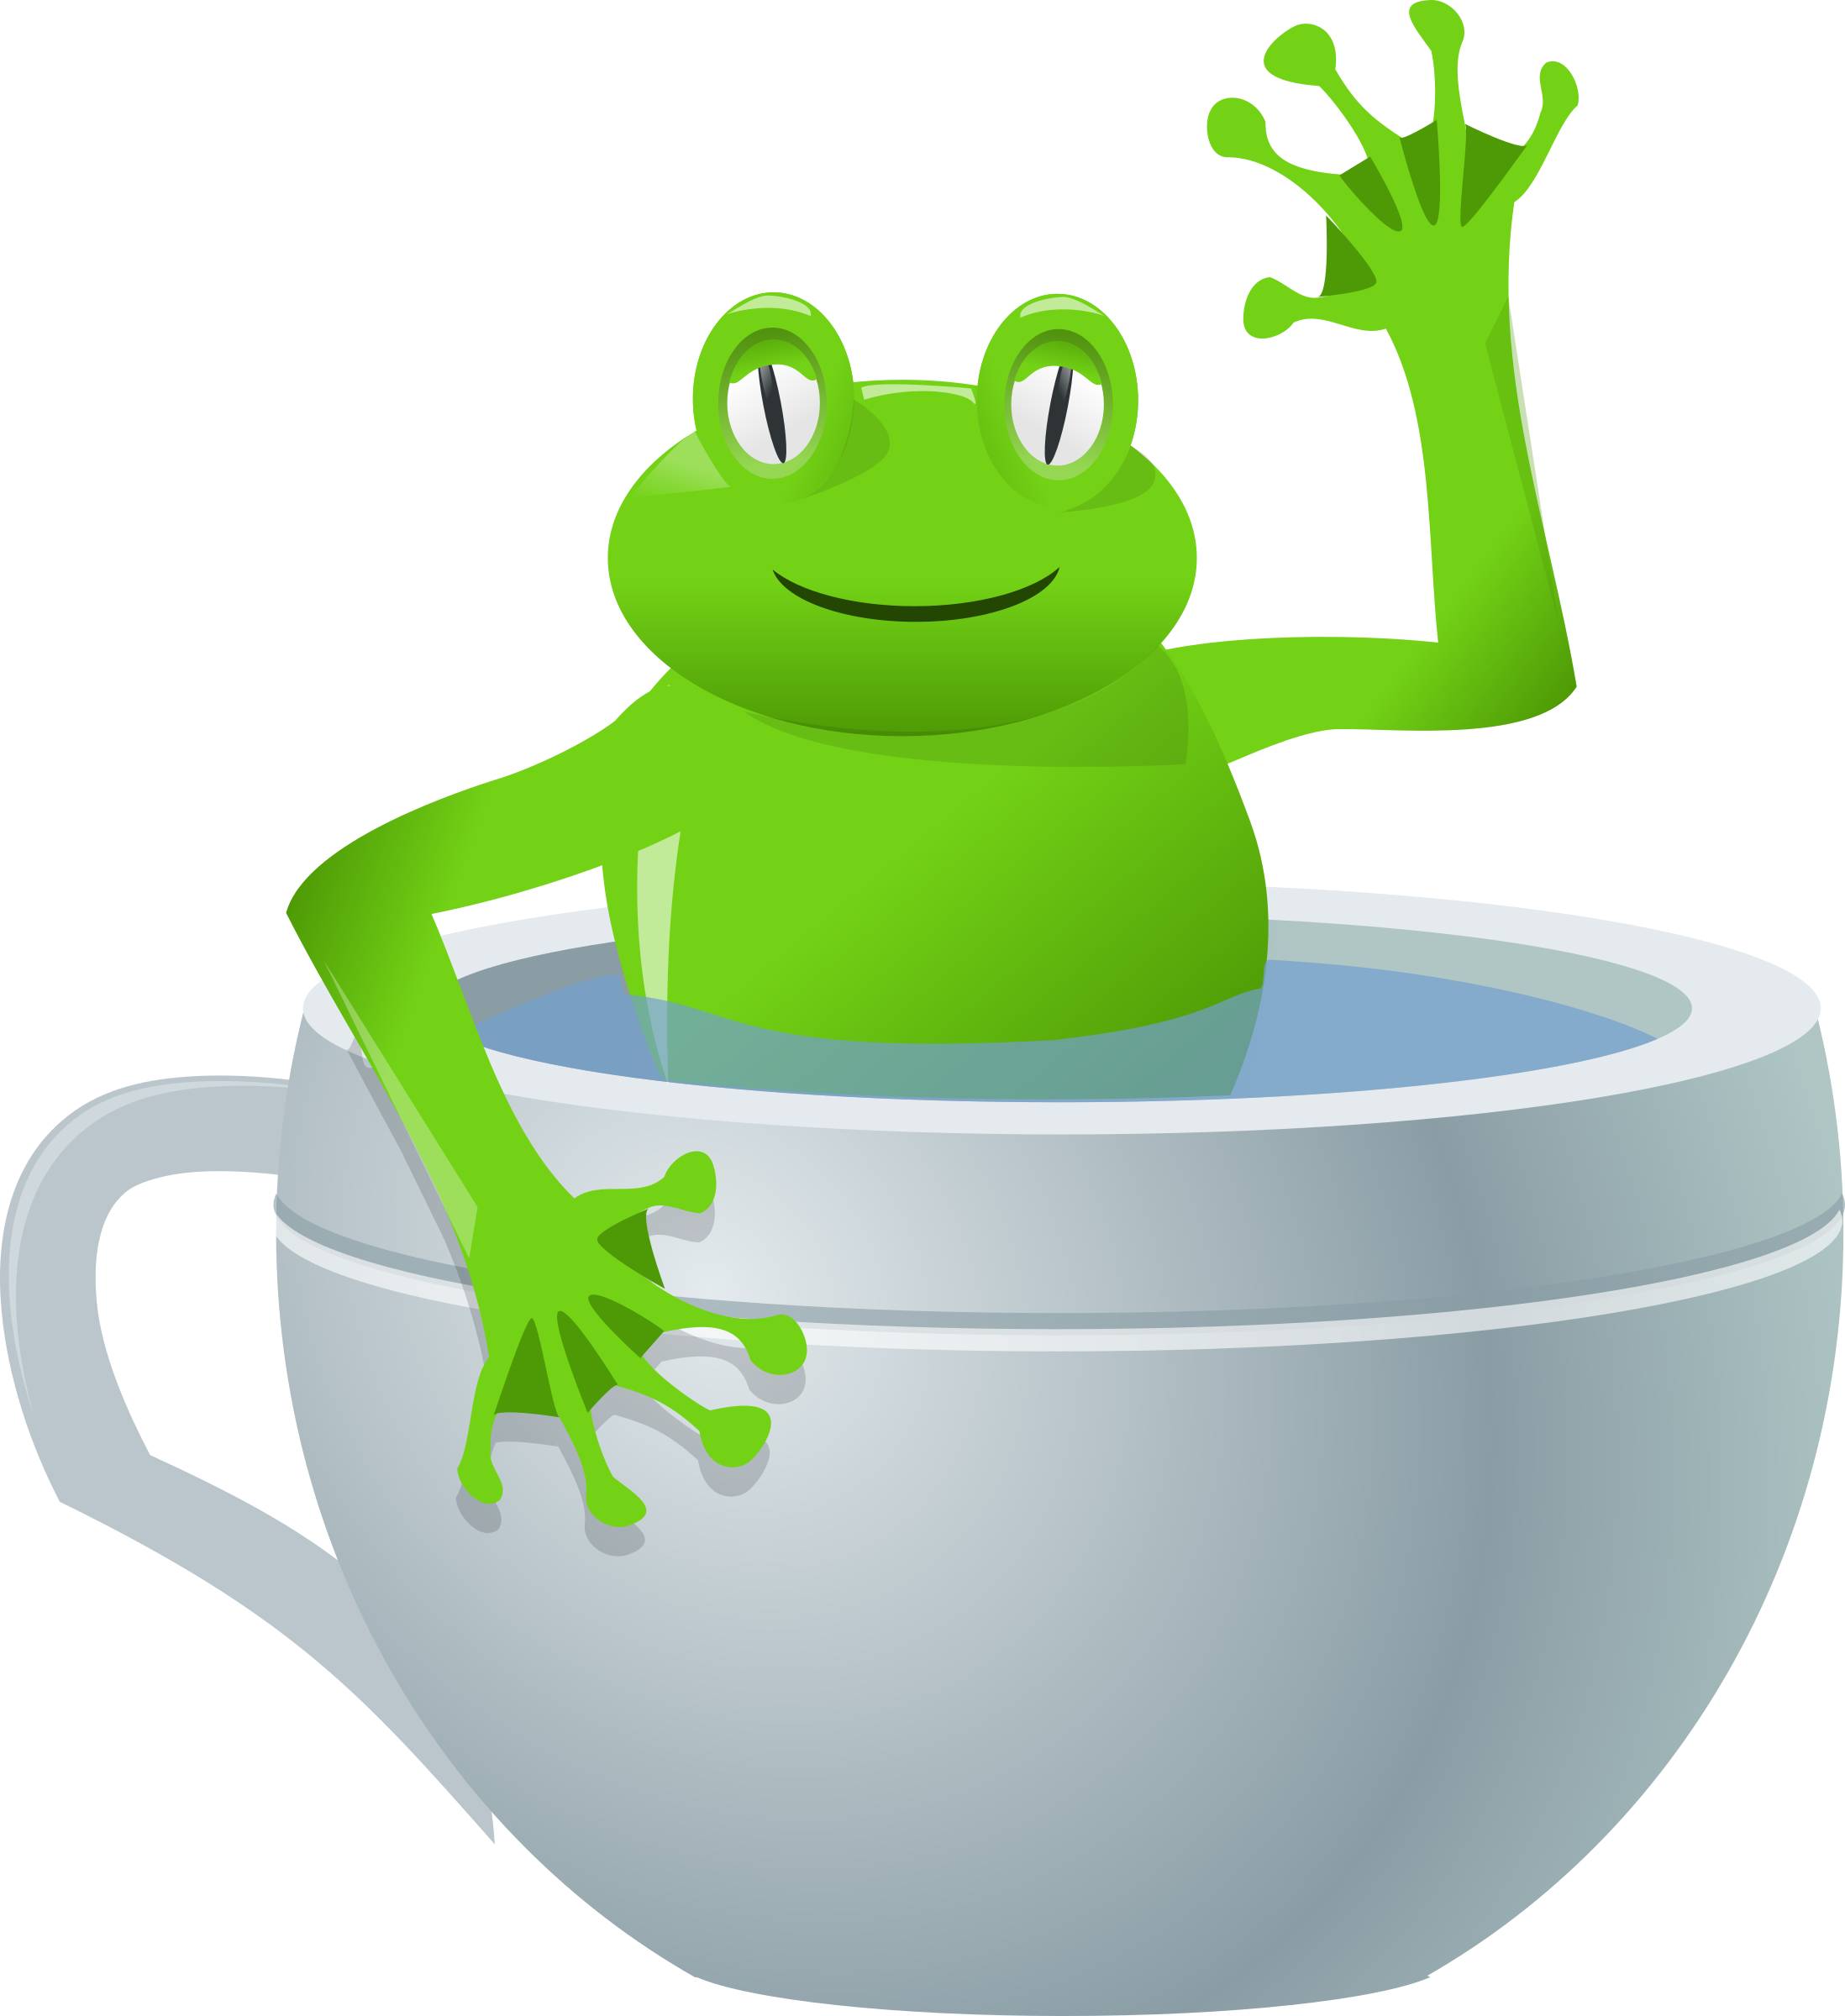 unexpected frog in my tea by rg1024